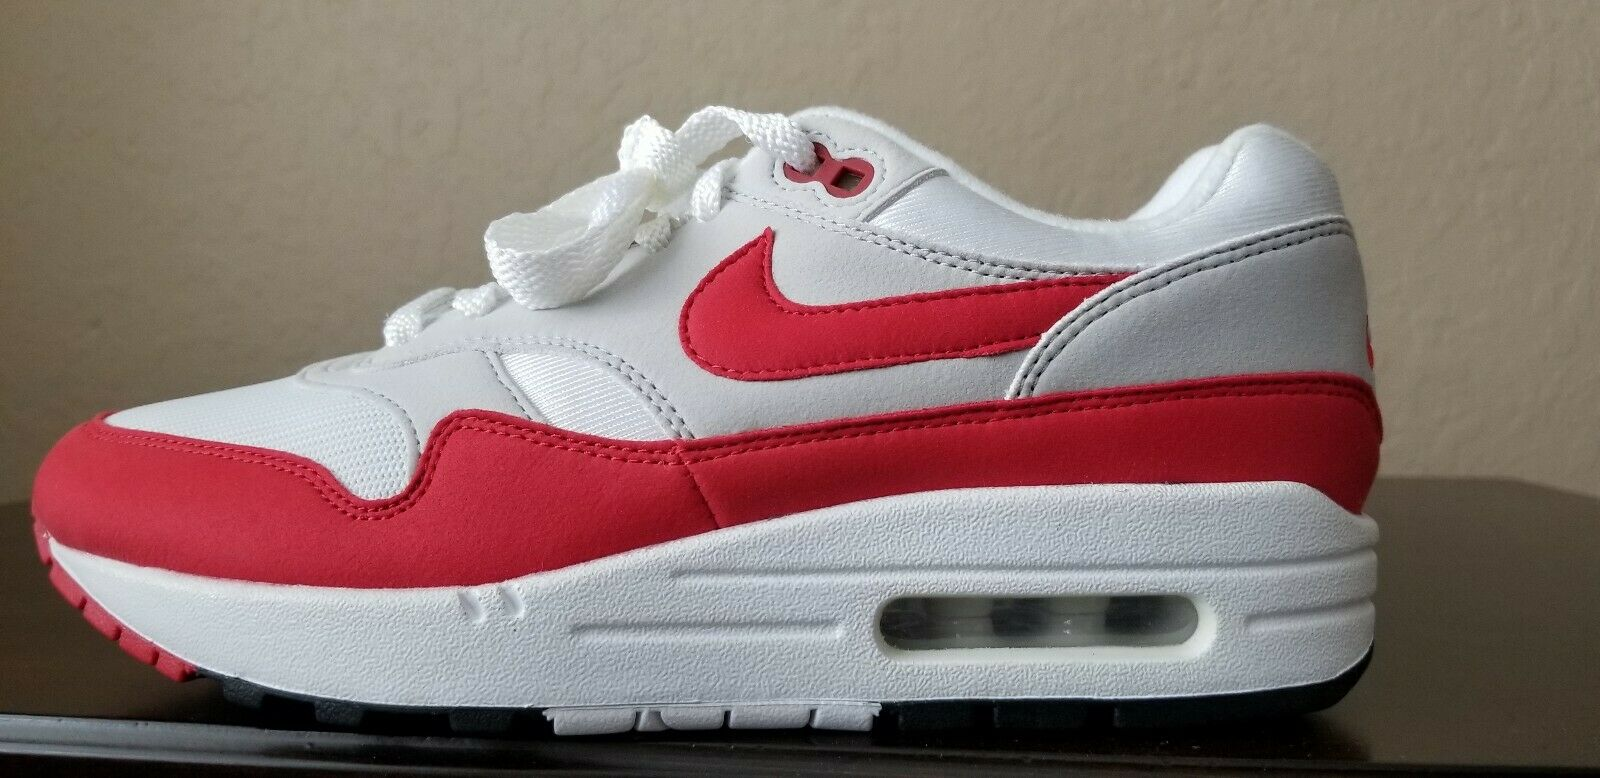 pretty nice 0e6e3 fce46 Nike Air Max 1 OG 30th Anniversary shoes shoes shoes University Red 908375-103  Mens